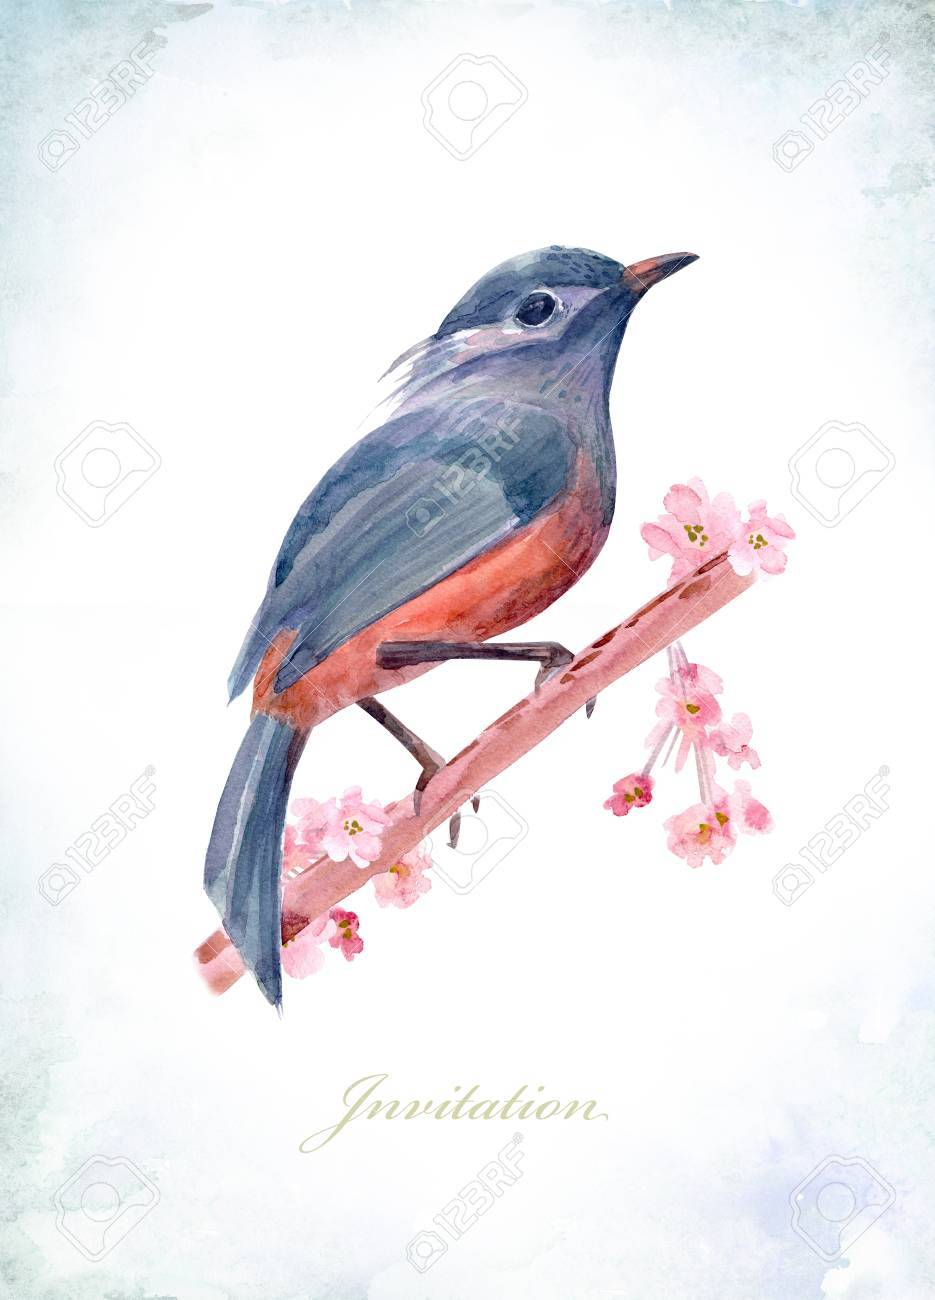 Vintage Greeting Card With A Graceful Bird On Flowering Branches